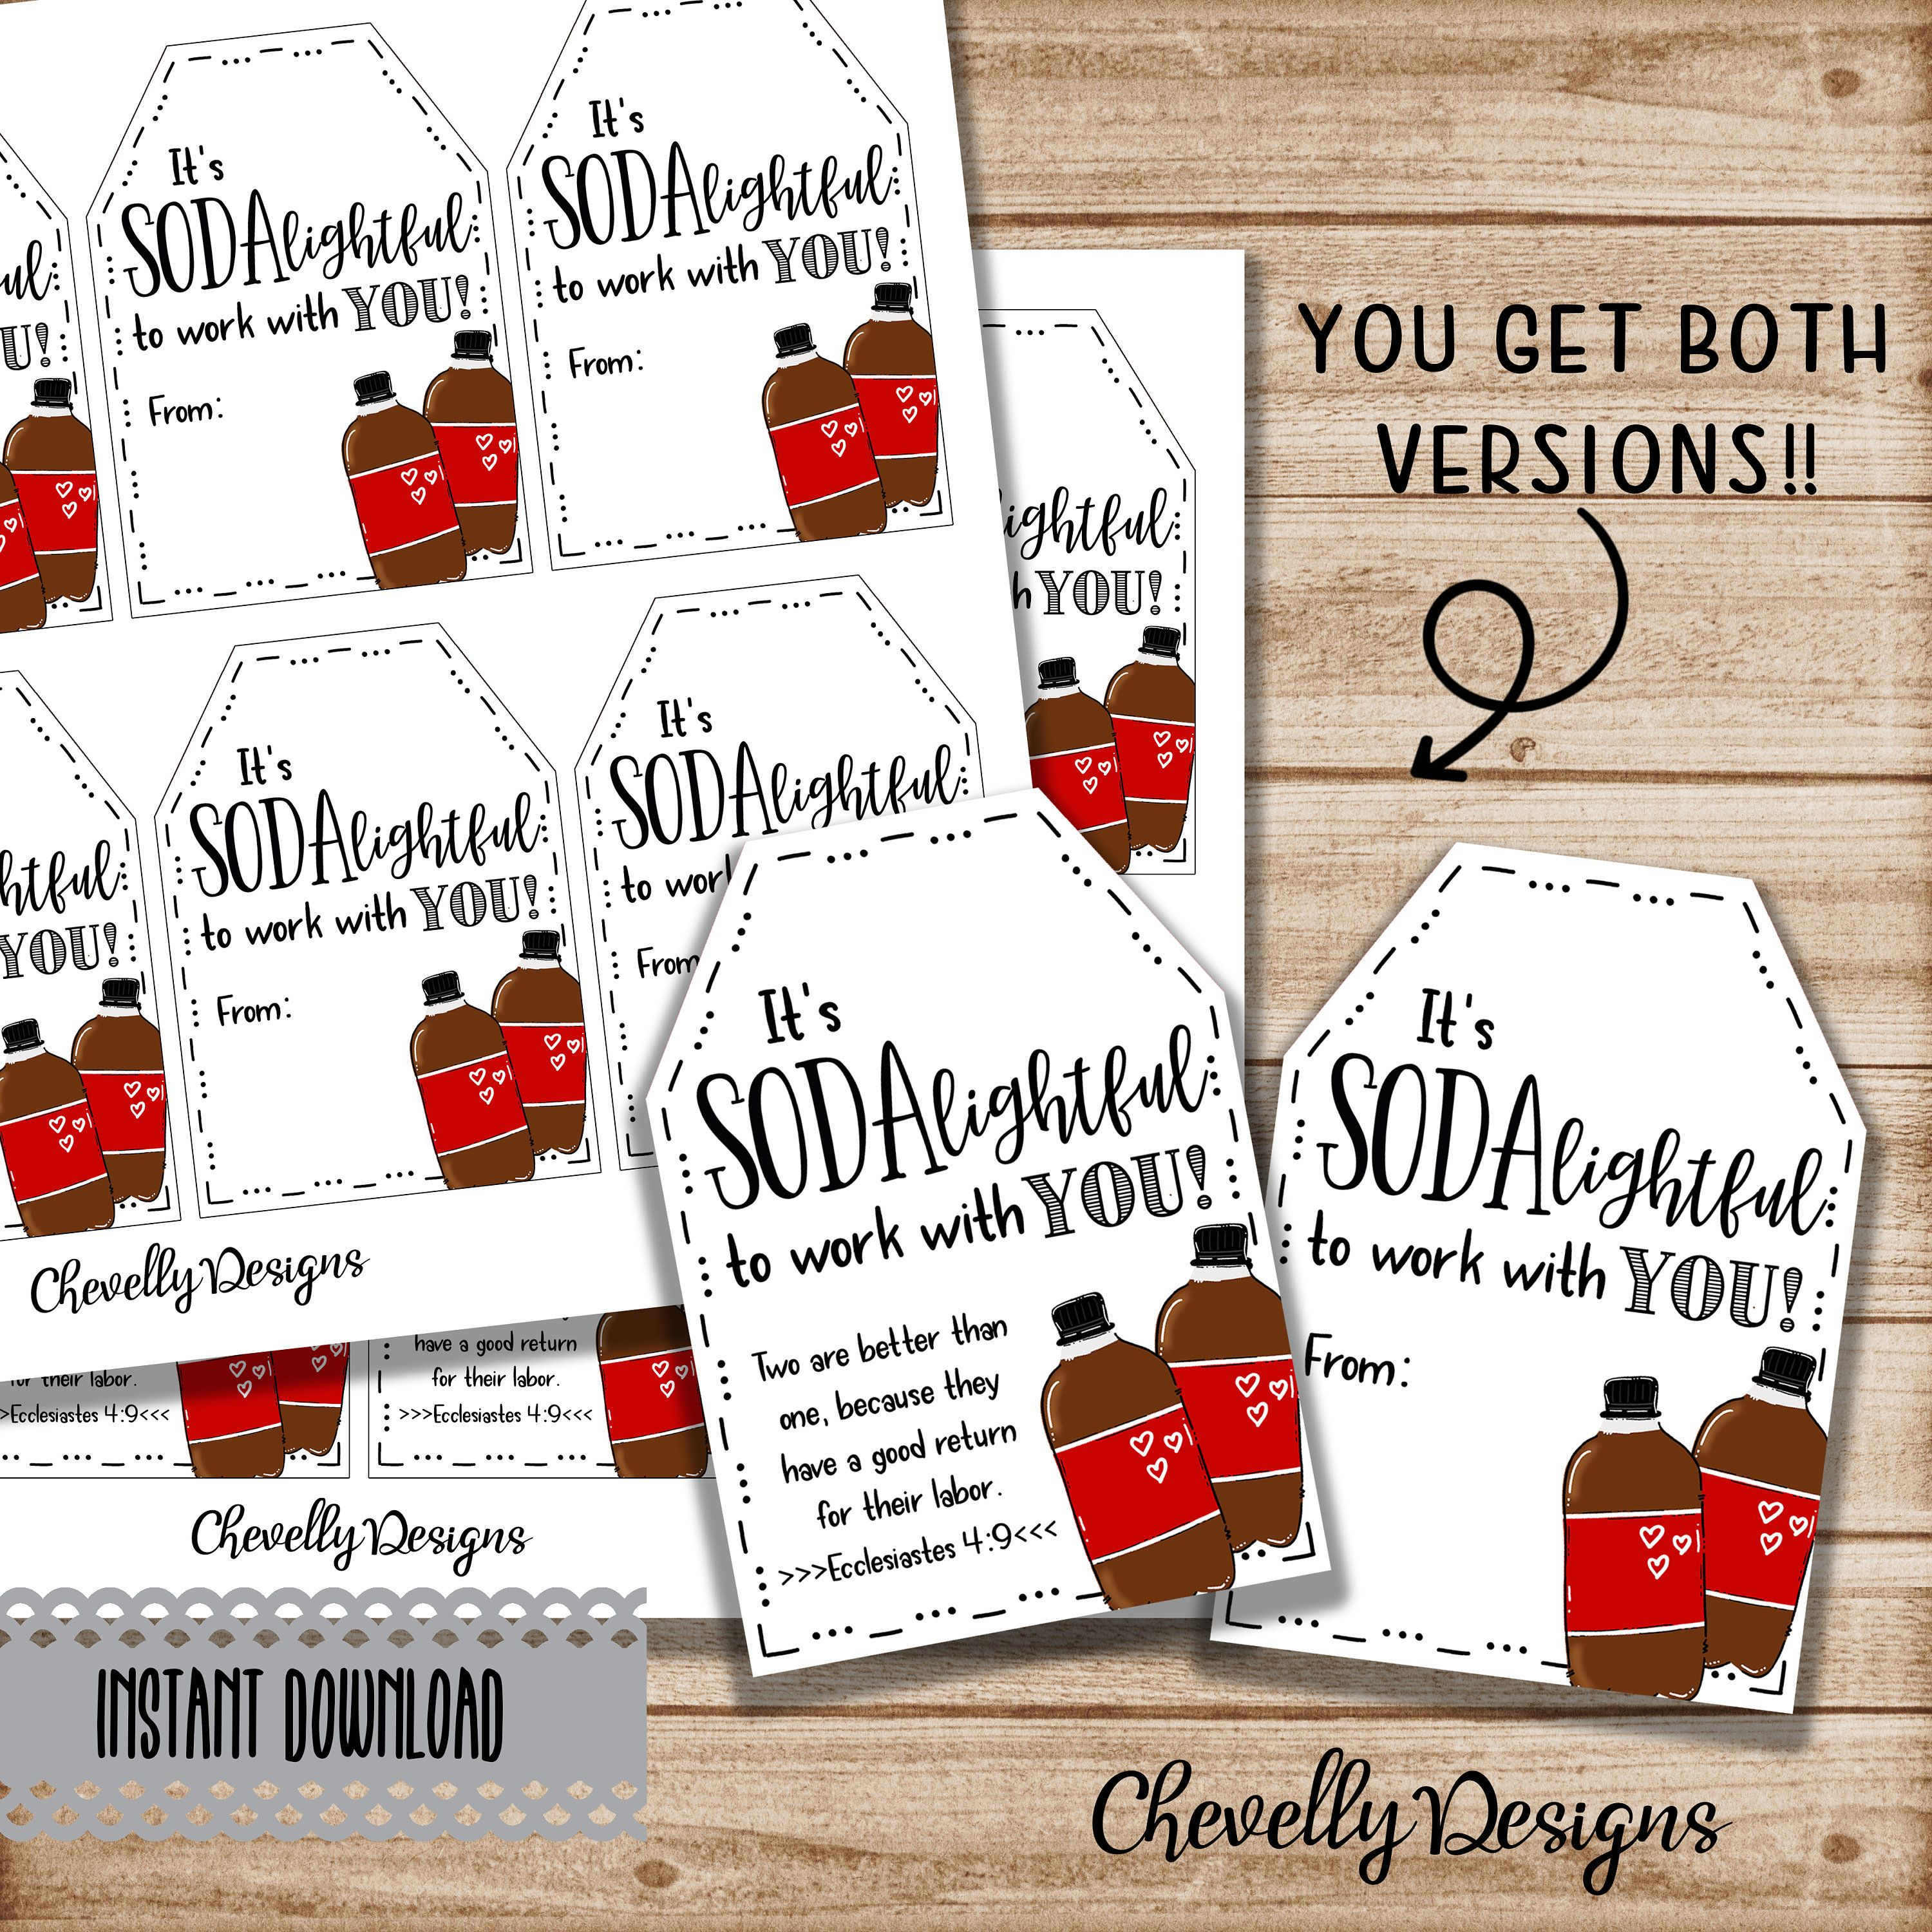 Soda Pop Gift Tags Printable Digital File Sodalghtful To Work With You Coworker Boss Staff Appreciation Ht010 Instant Download Gift Tags Printable Staff Appreciation Gifts Employee Appreciation Gifts